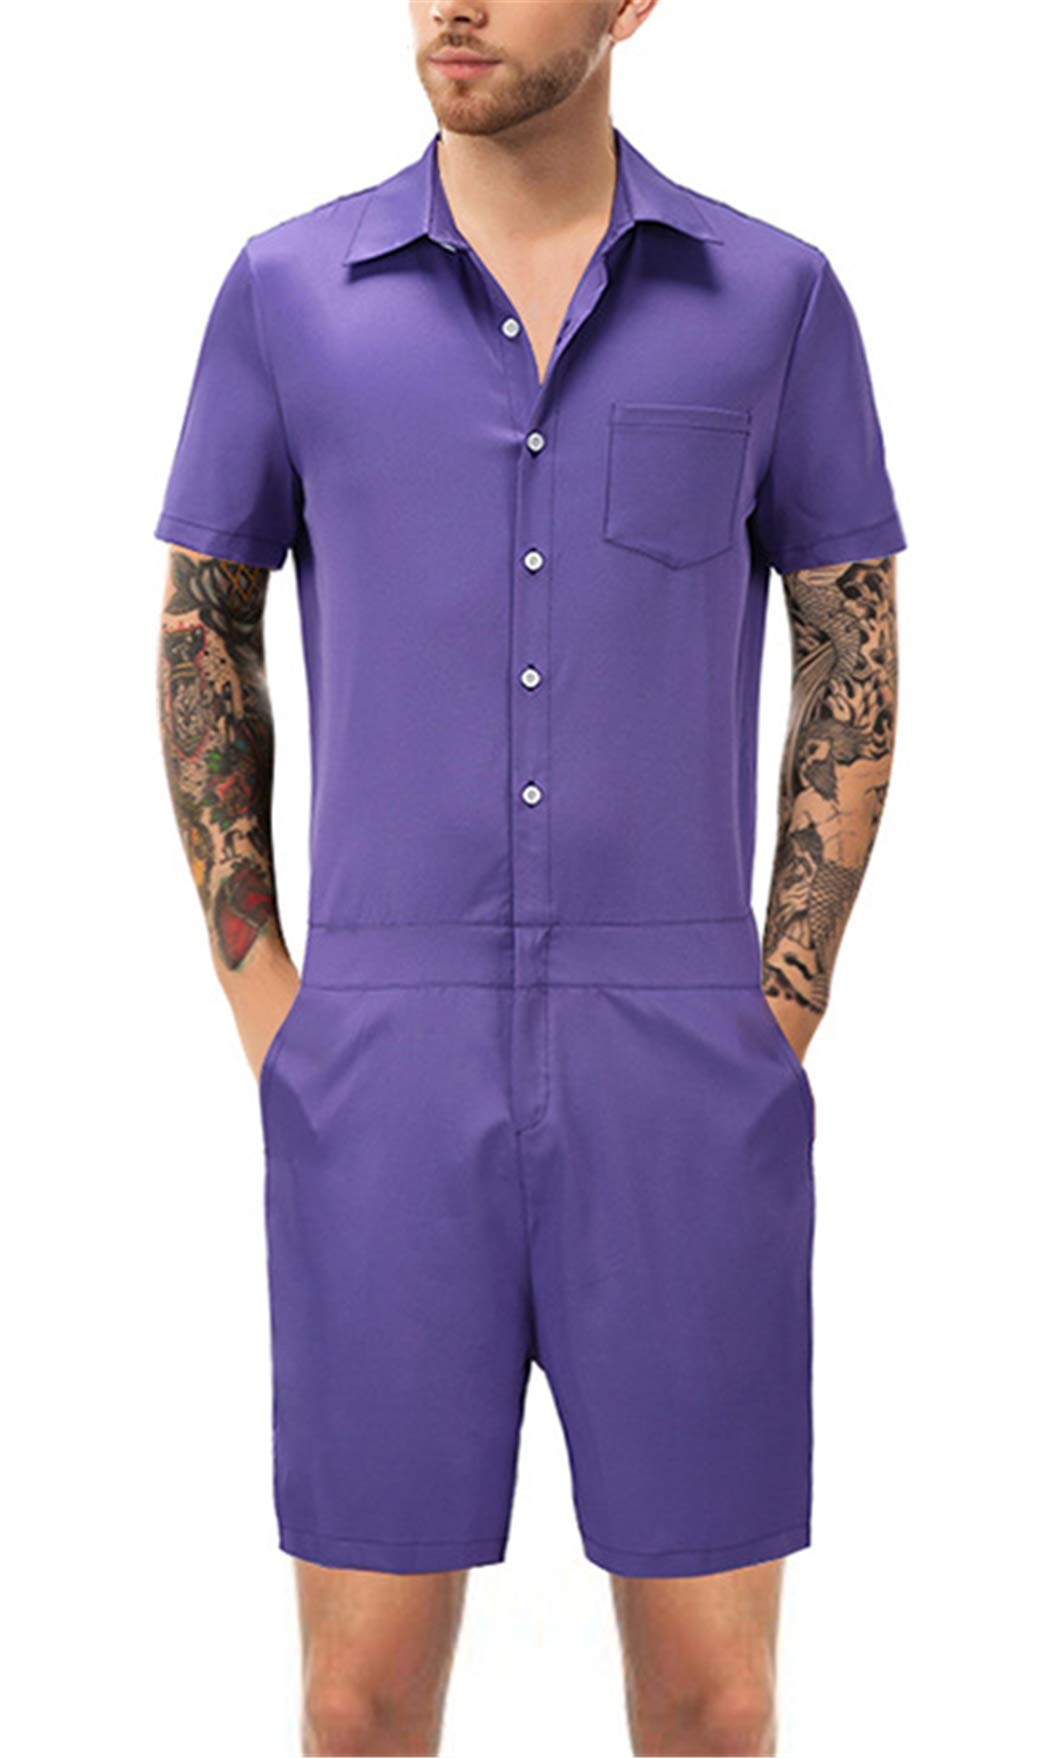 latest style Buy Authentic largest selection of HOP FASHION Mens One Piece Romper Casual Button Short Sleeve ...